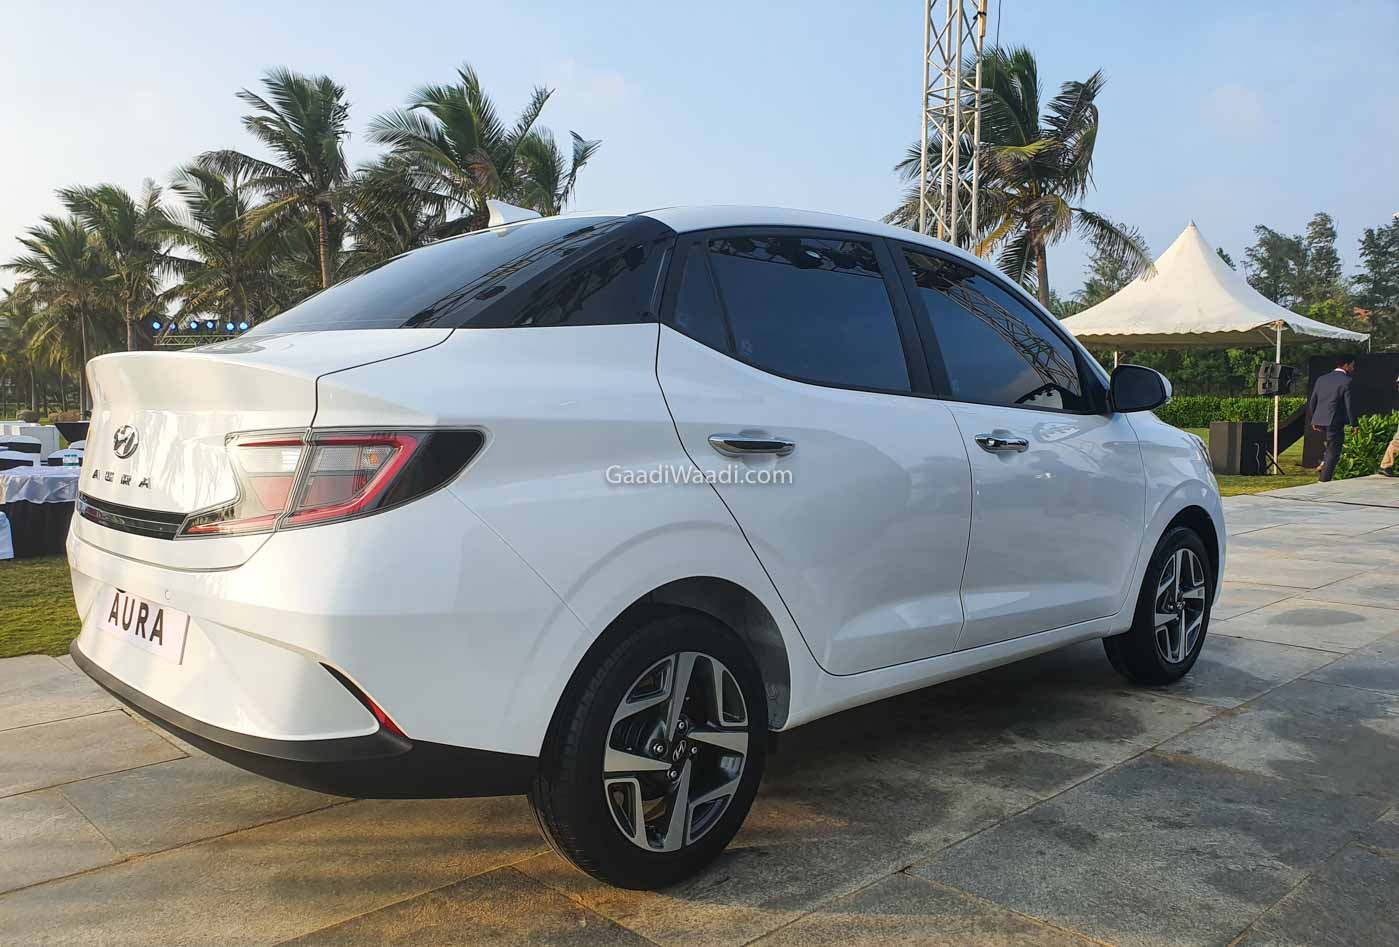 Hyundai Aura Sedan Launching On 21st Jan Rivaling Maruti Dzire, Honda Amaze